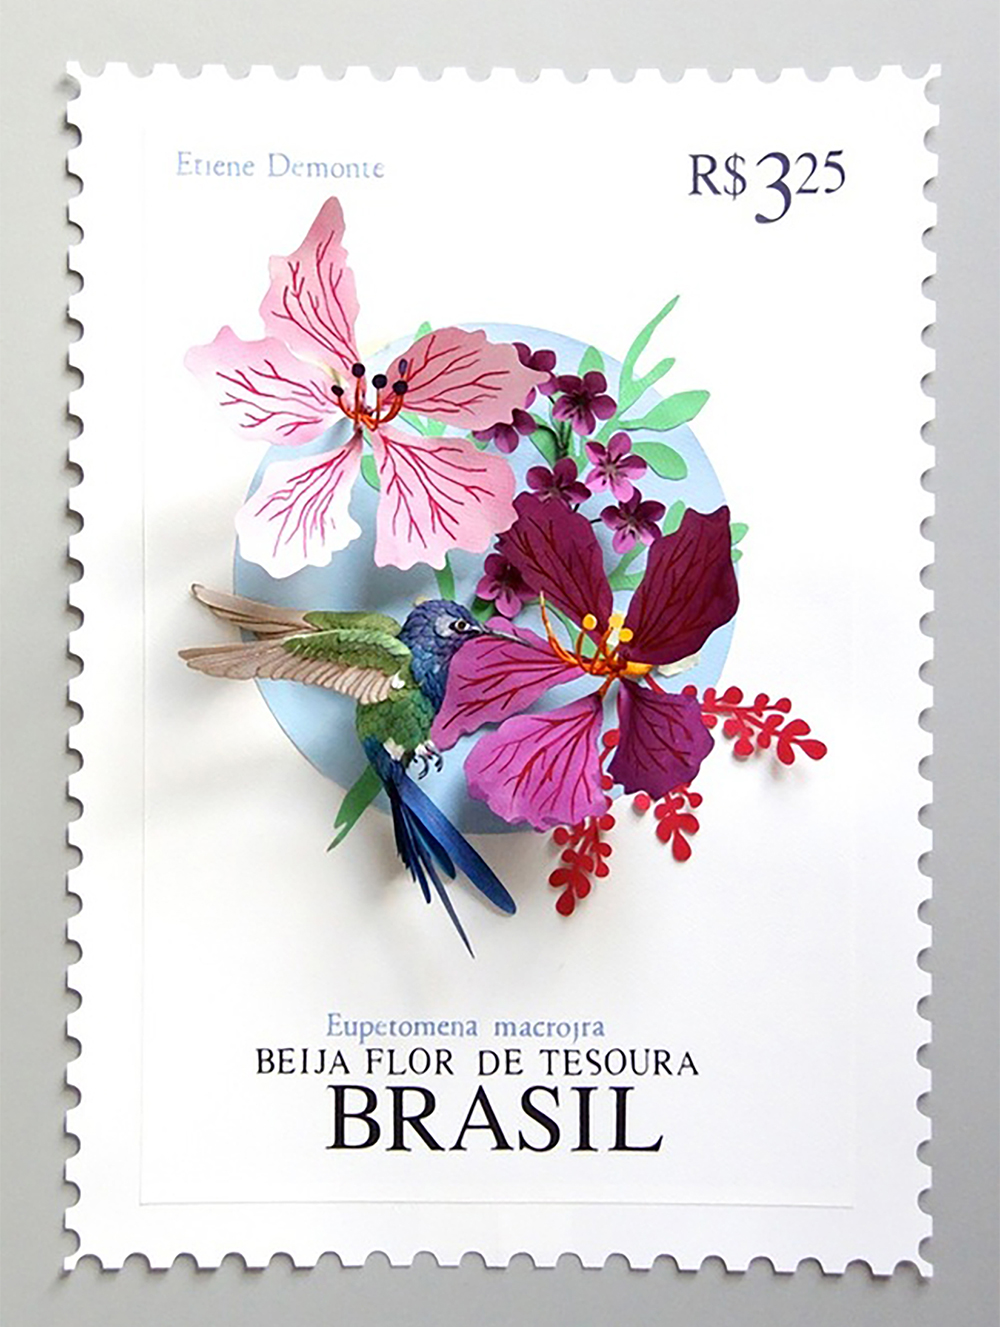 Paper Bird Sculptures Juxtaposed With International Stamps by Diana Beltran Herrera